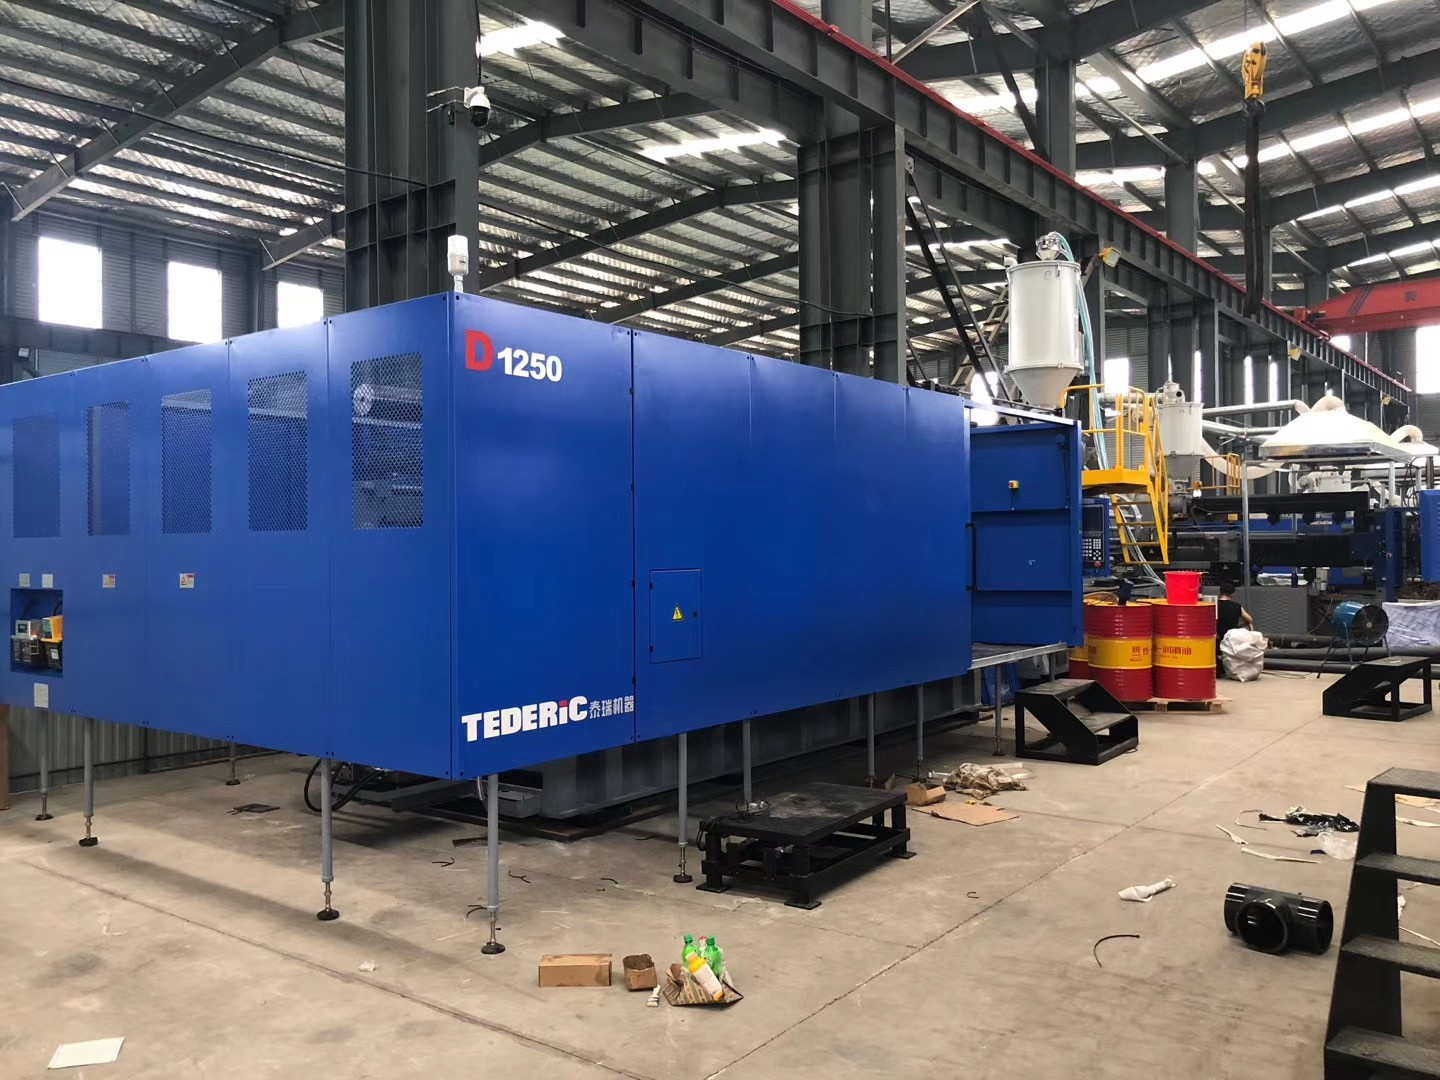 PE pipe injection molding machines arrived at Tengyuan Group's pipe fitting production